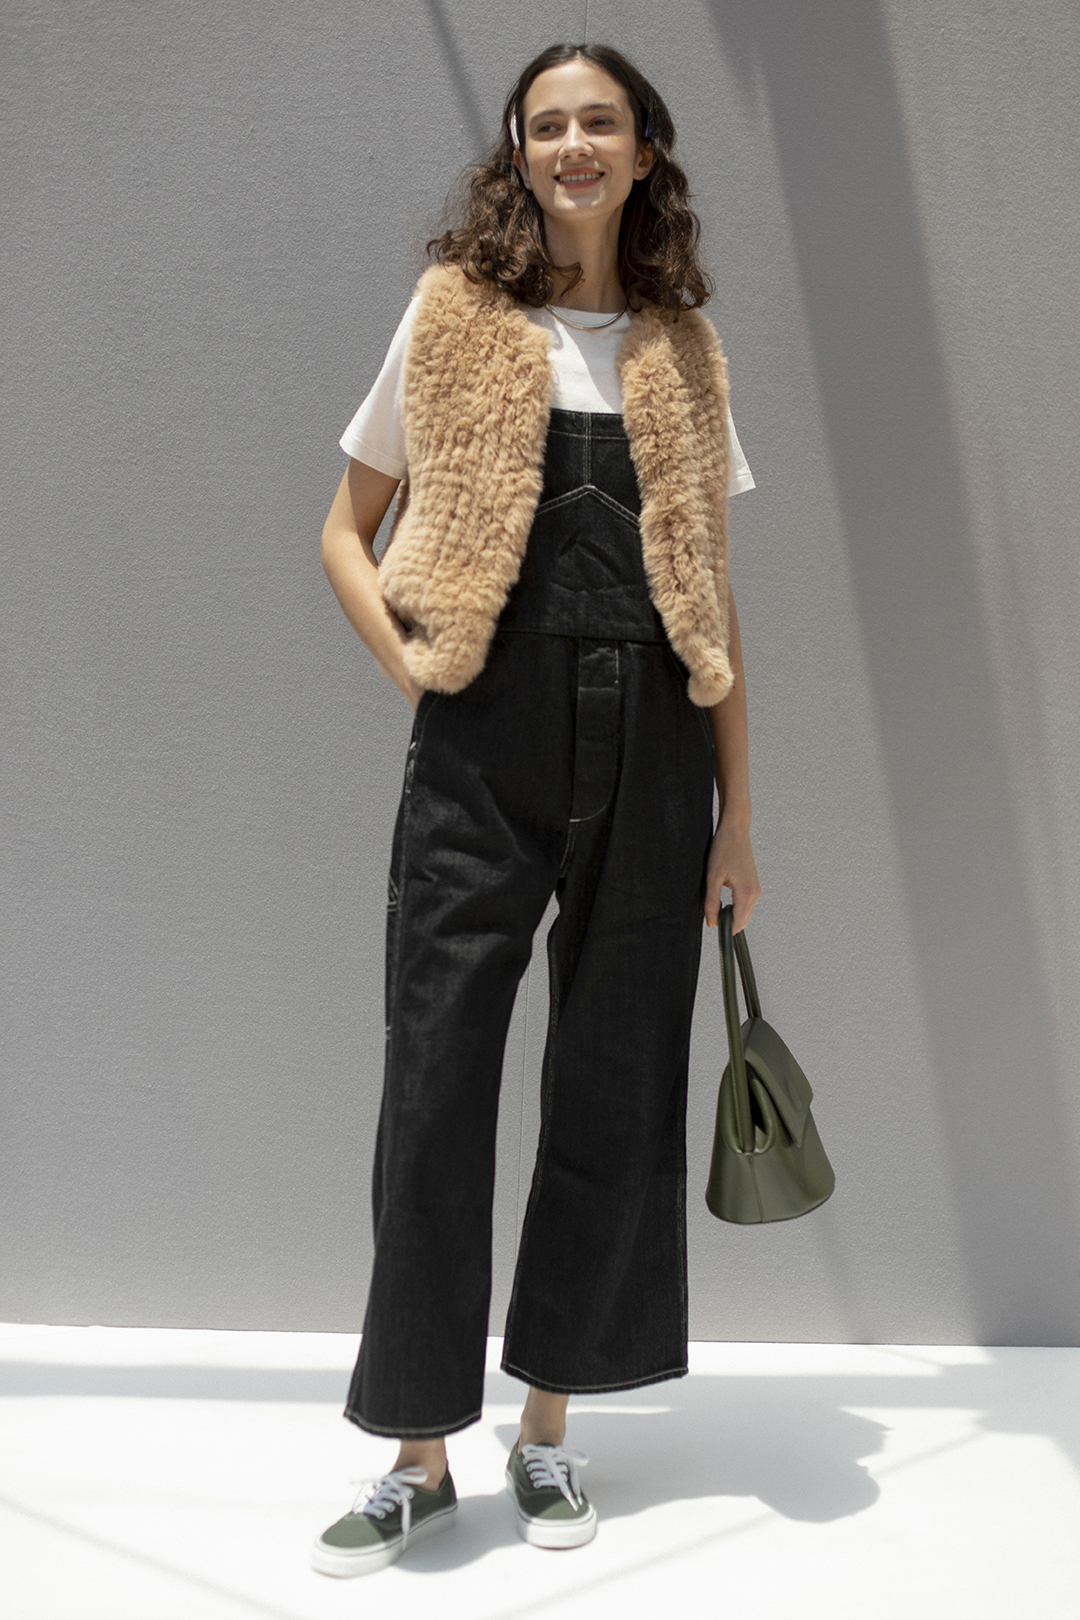 5_1 overall¥36,300  tee¥9,350  vest¥39,600  hair acc¥9,900  necklace¥30,800  bag¥60,500  shoes¥6,050